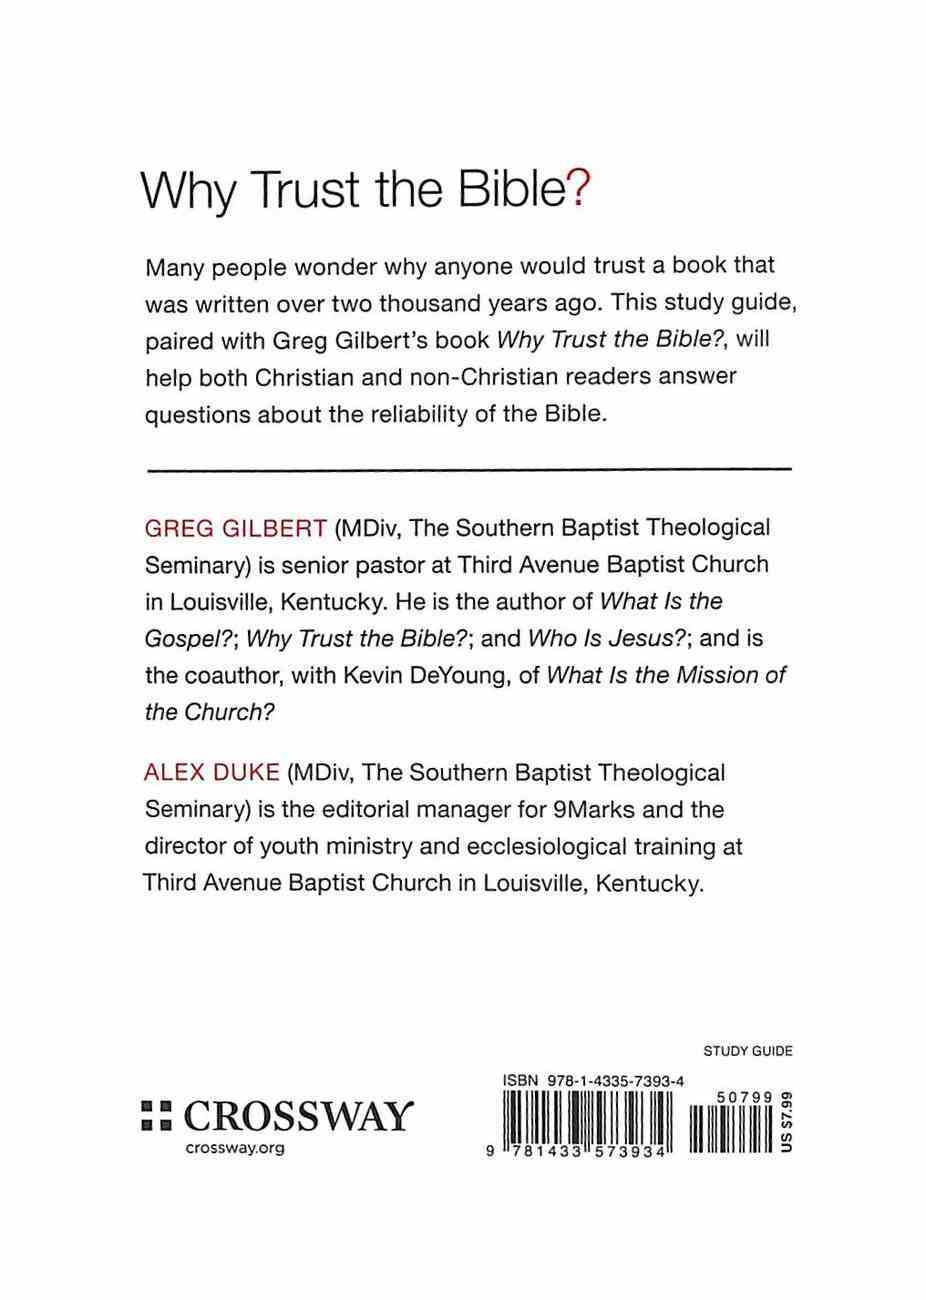 Why Trust the Bible? (Study Guide) (9marks Series) Paperback